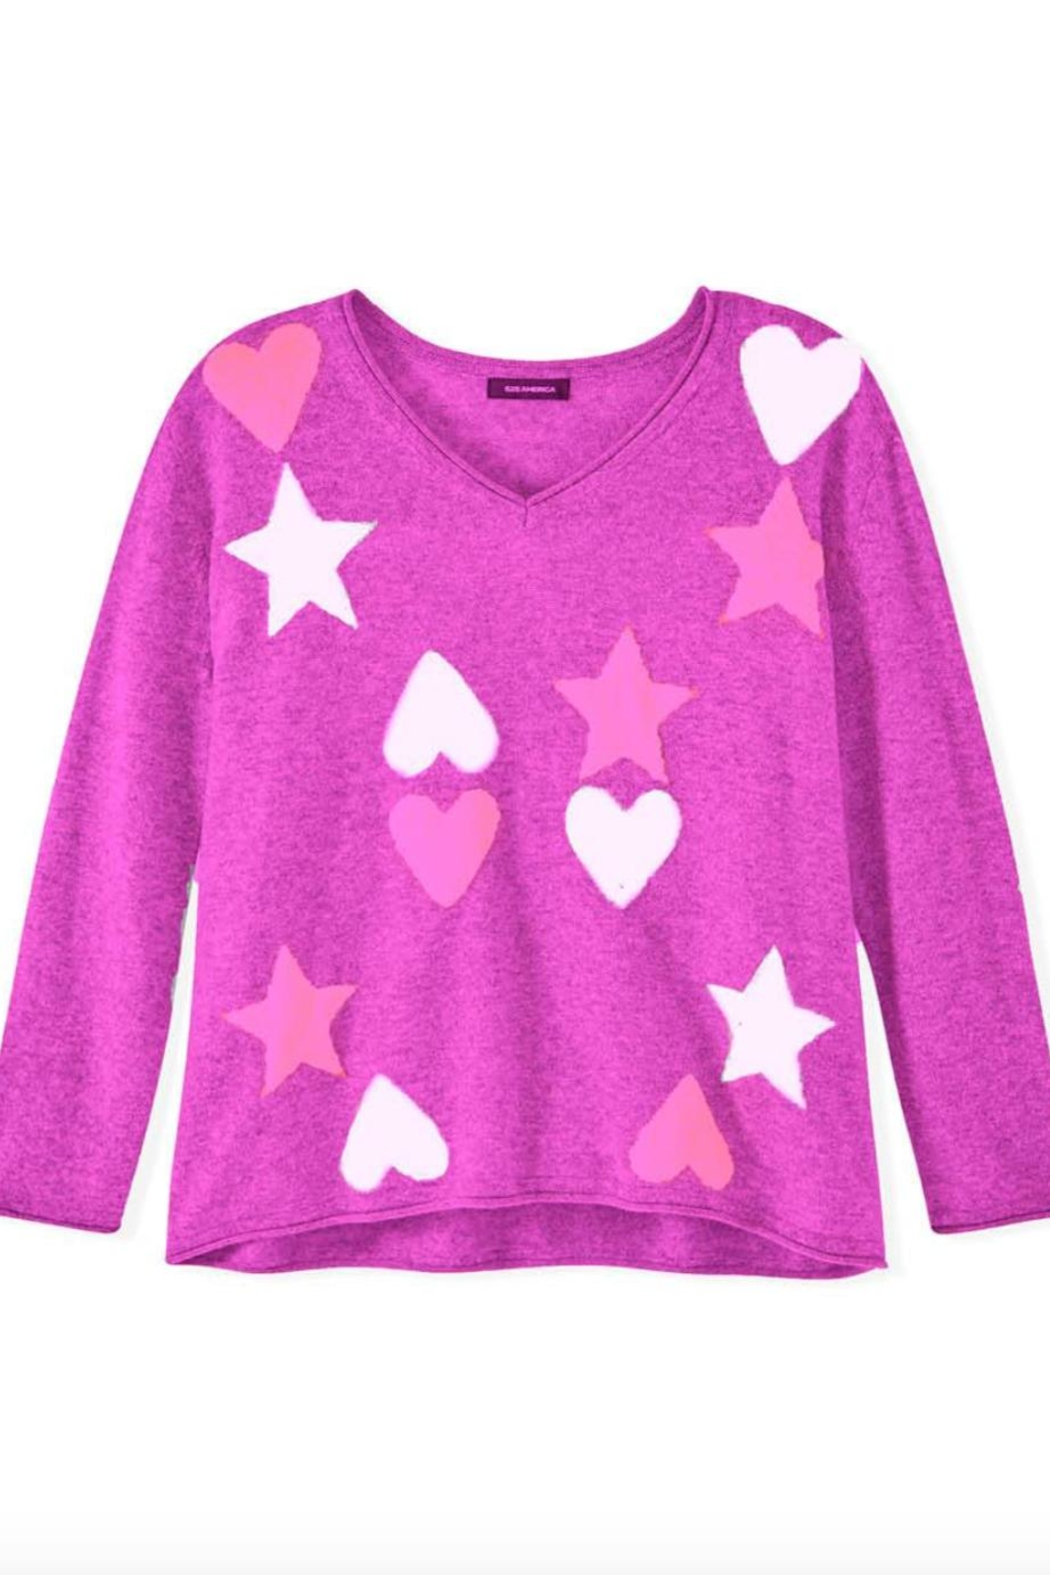 525 America Hearts Stars Sweater - Front Cropped Image